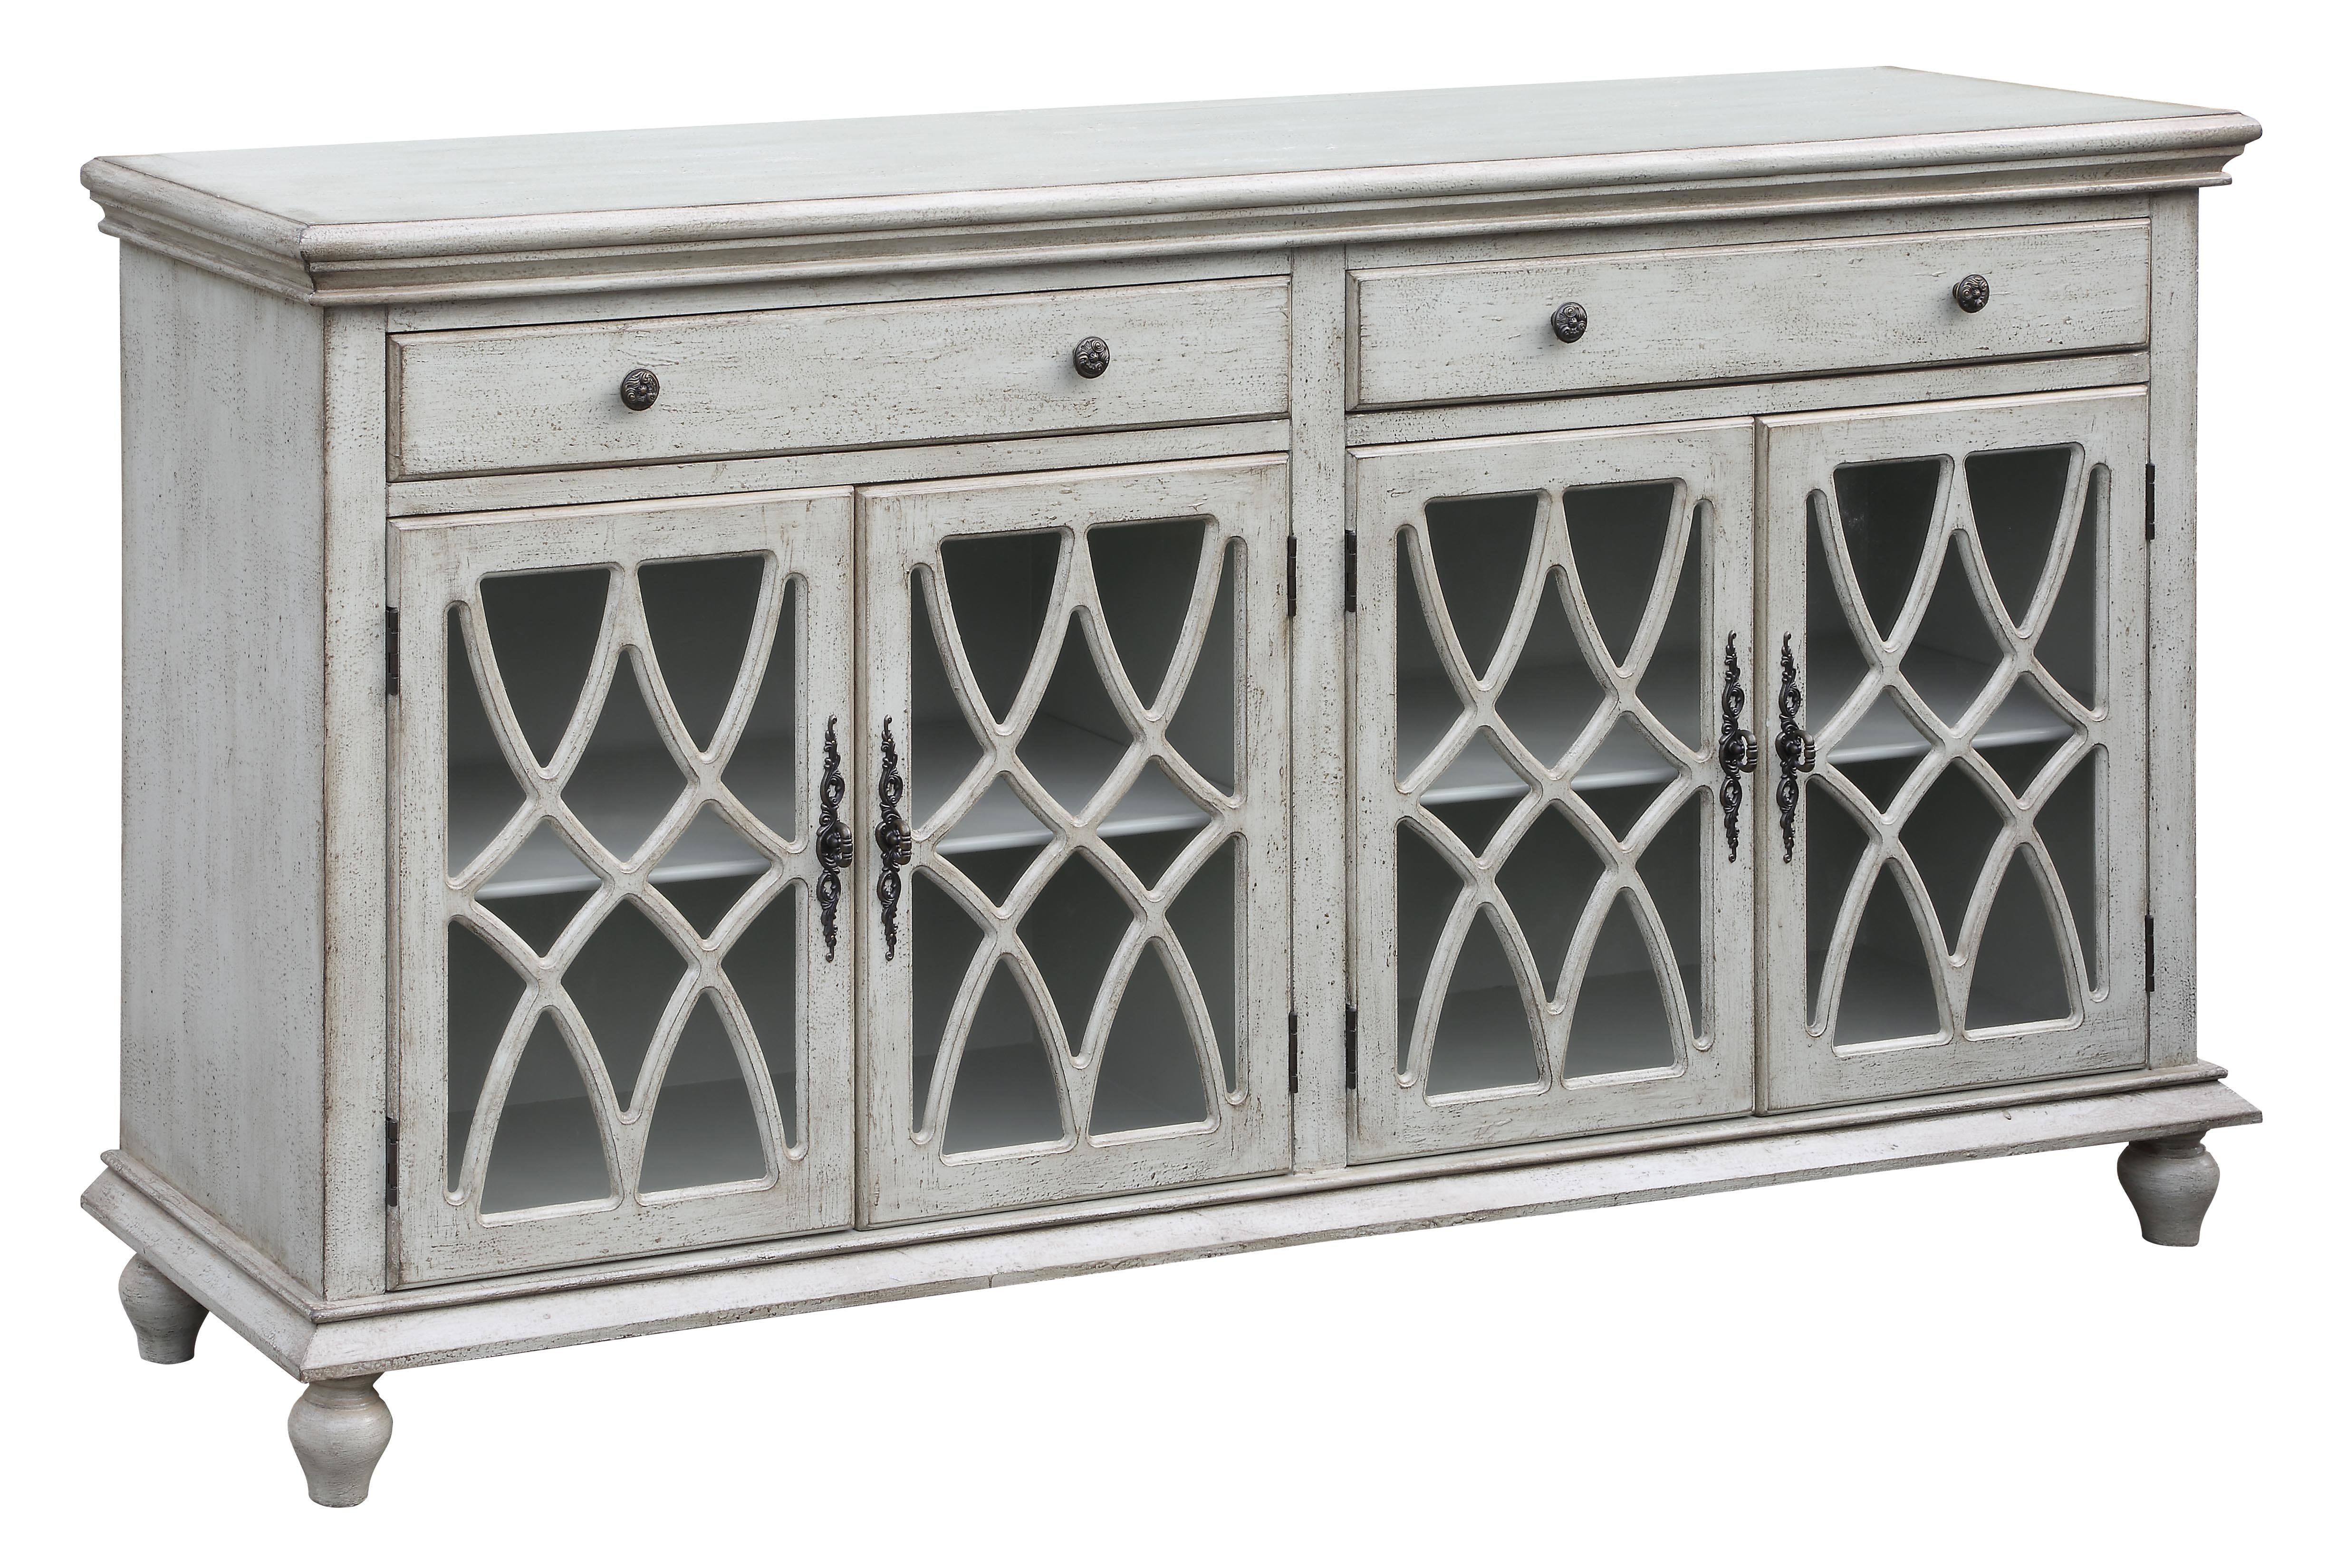 Sideboards & Credenzas | Joss & Main In Most Up To Date Phyllis Sideboards (View 4 of 20)